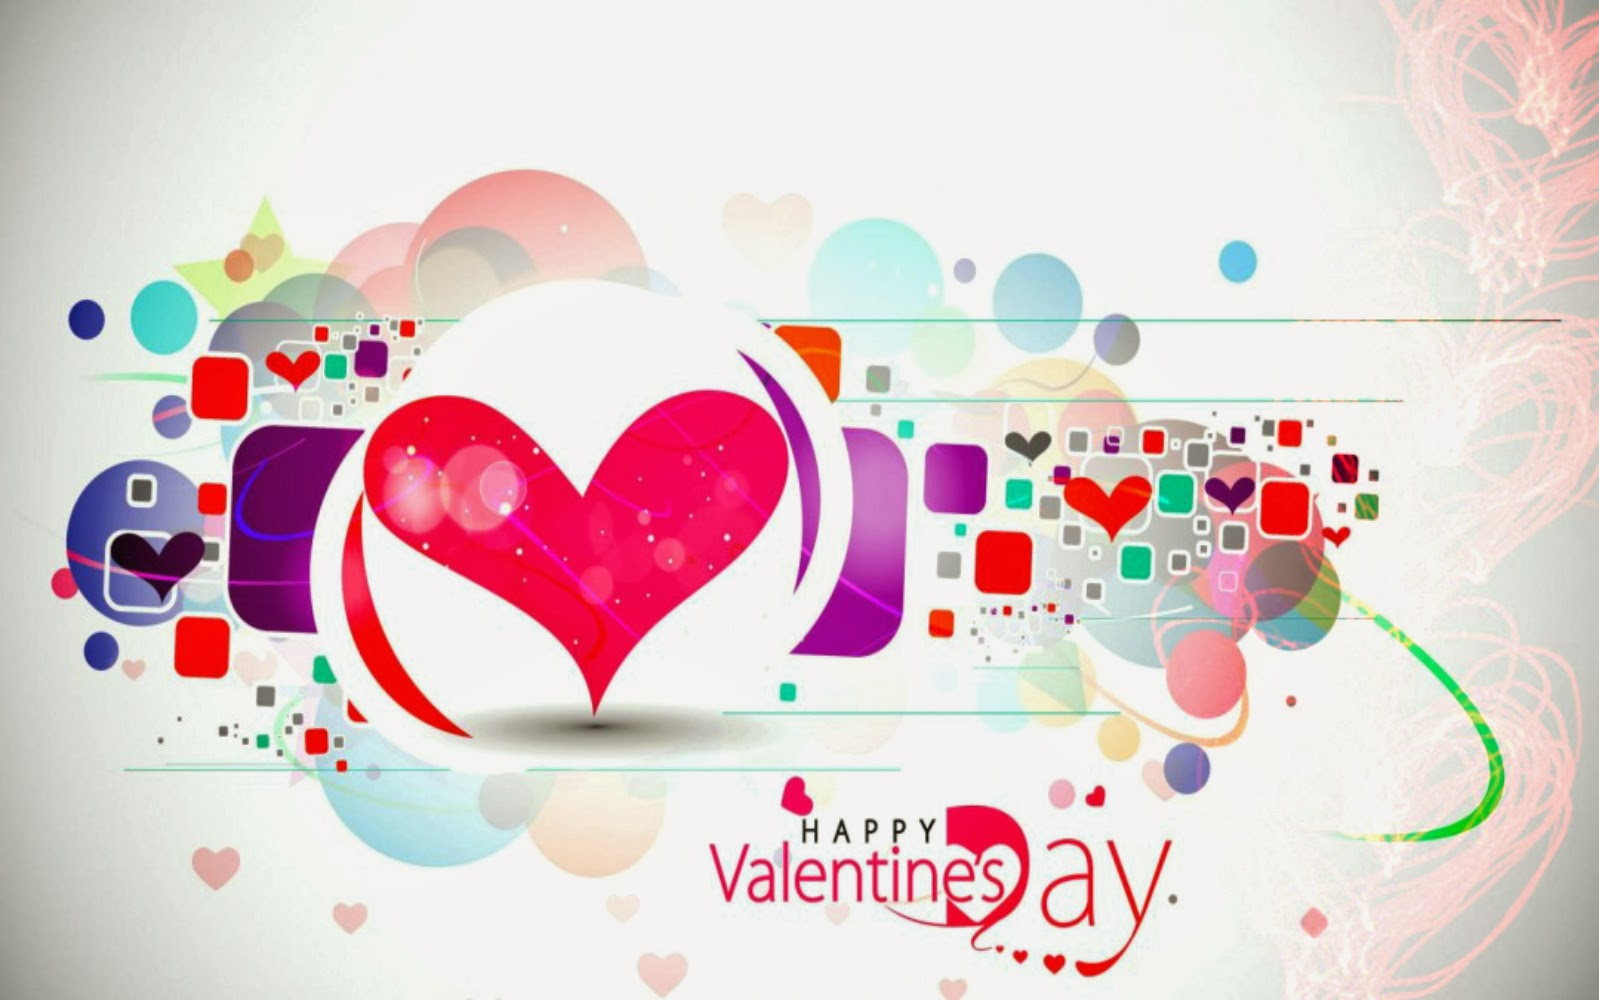 valentine day hd wallpapers, valentine day 2014 free wallpapers, valentine day technology hearts wallpapers, valentine day special effect wallpapers